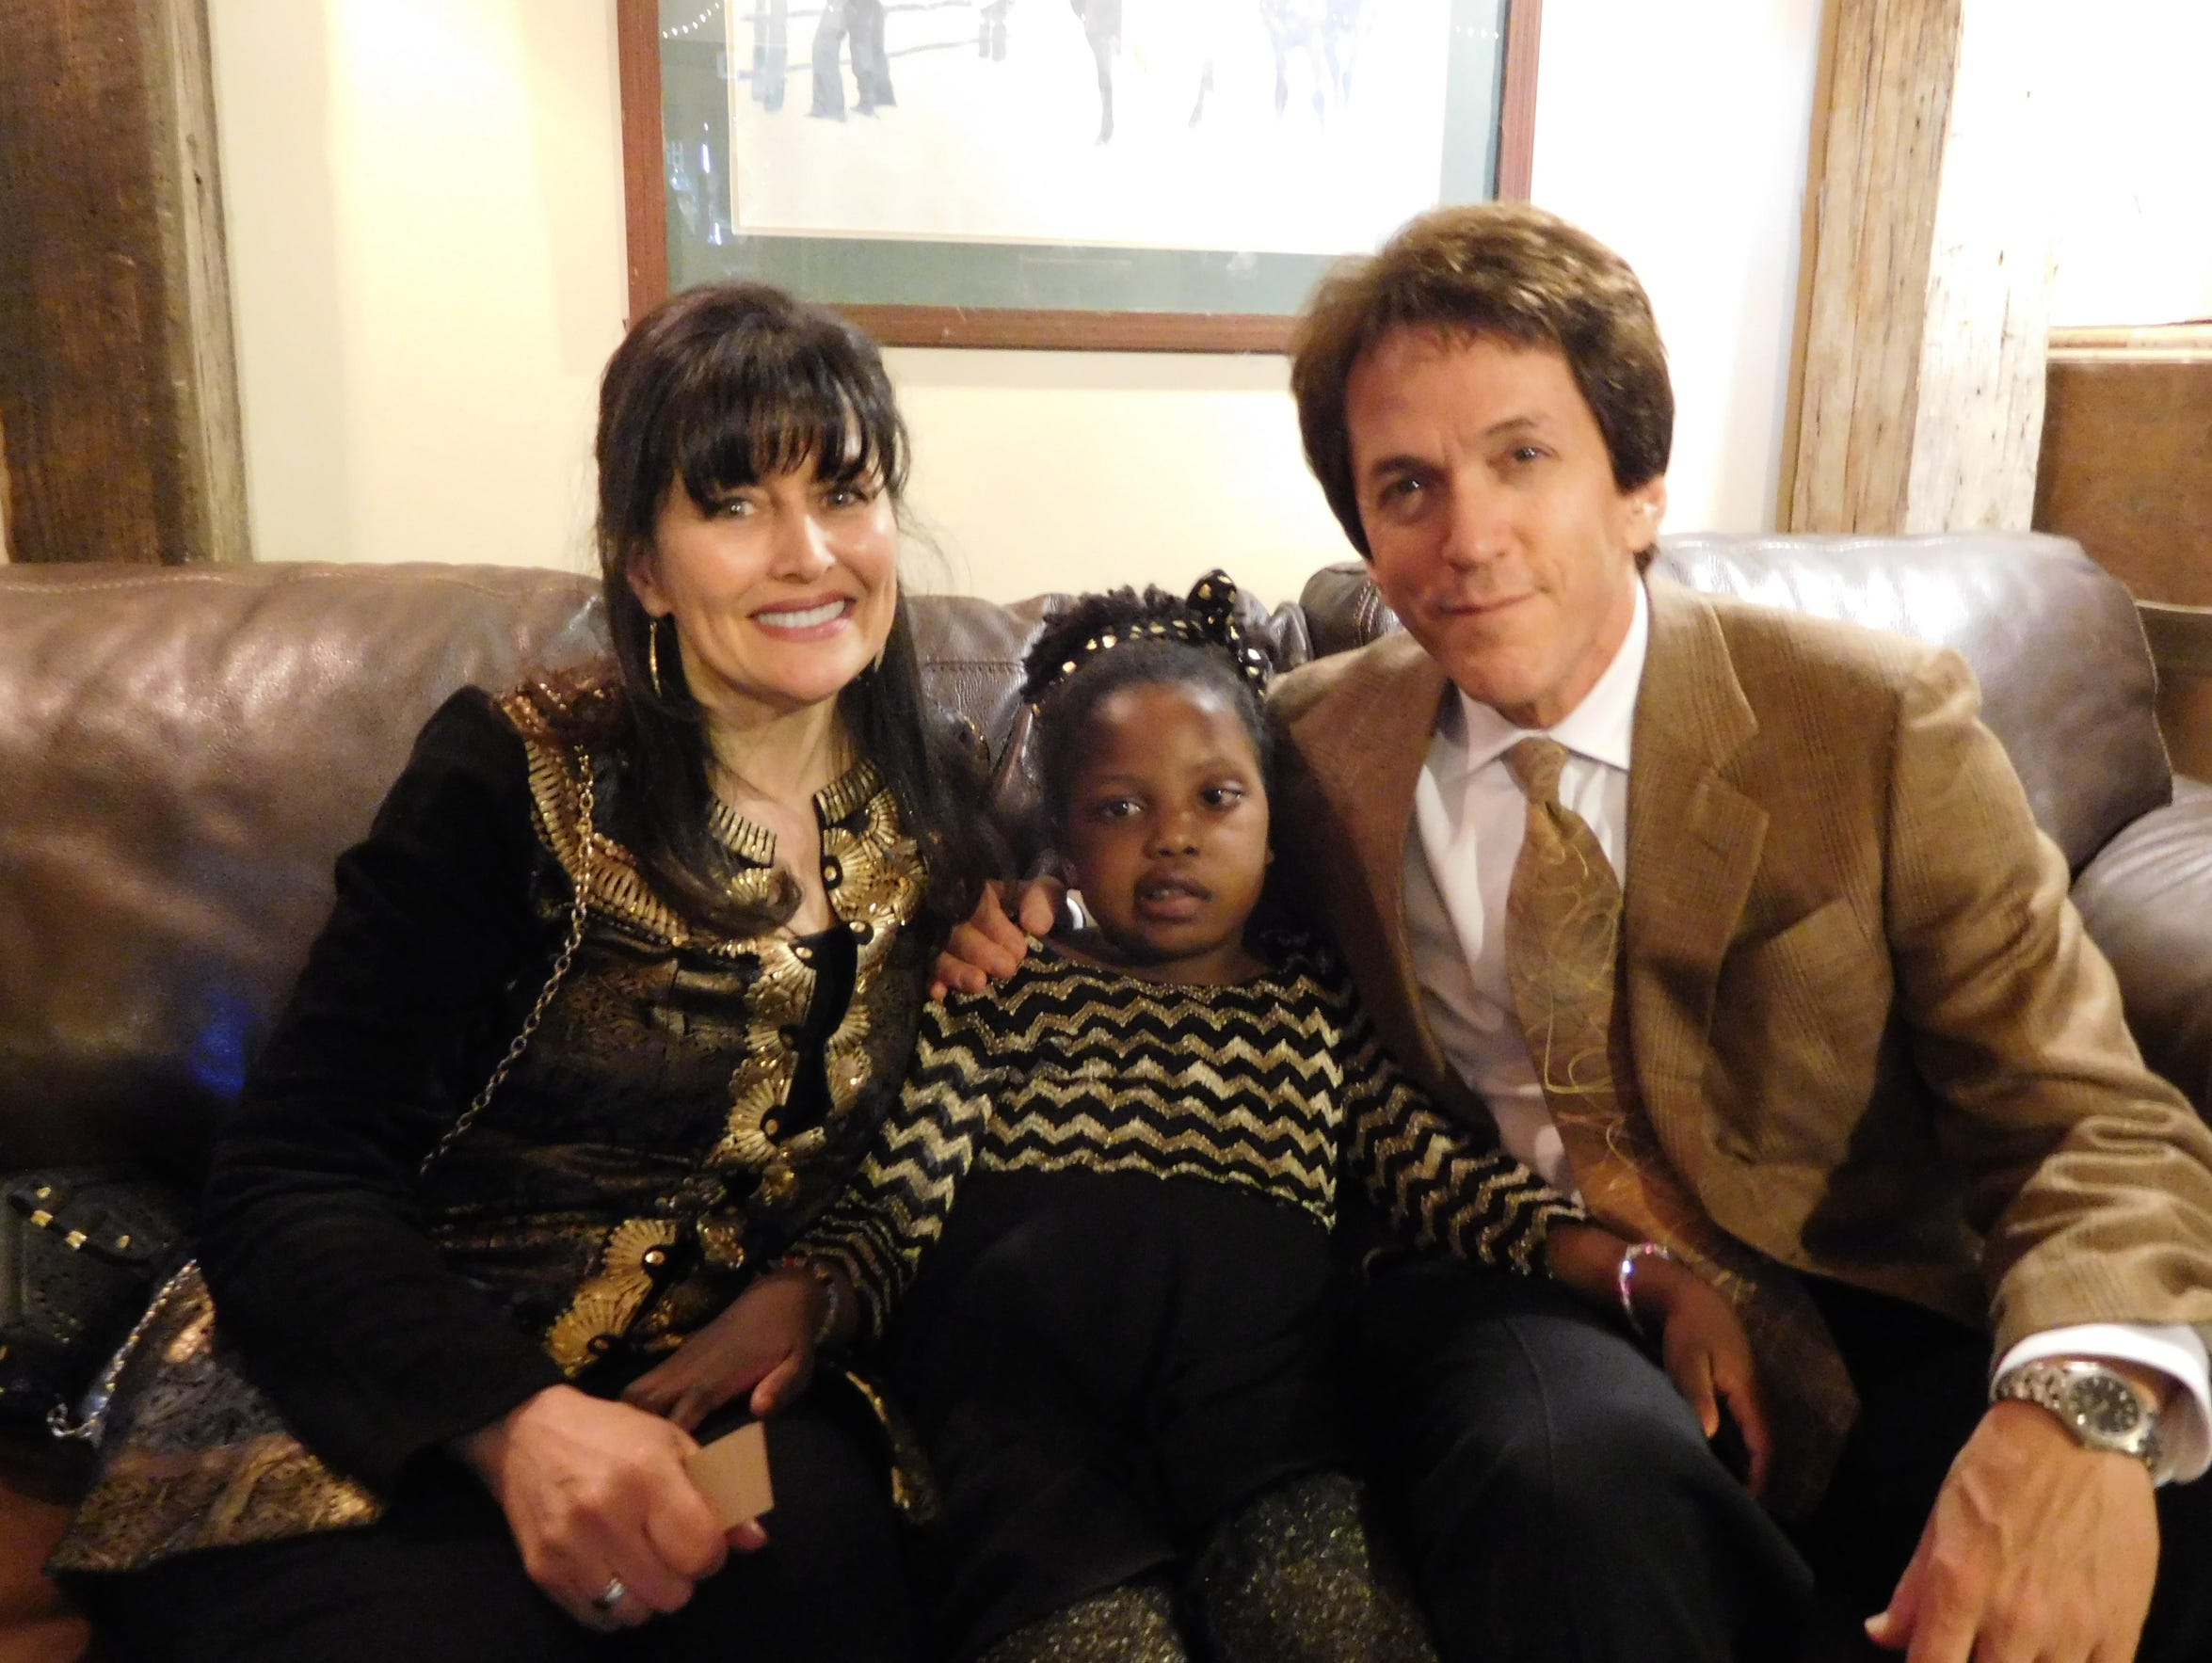 Janine, from left, Chika and Mitch during a family